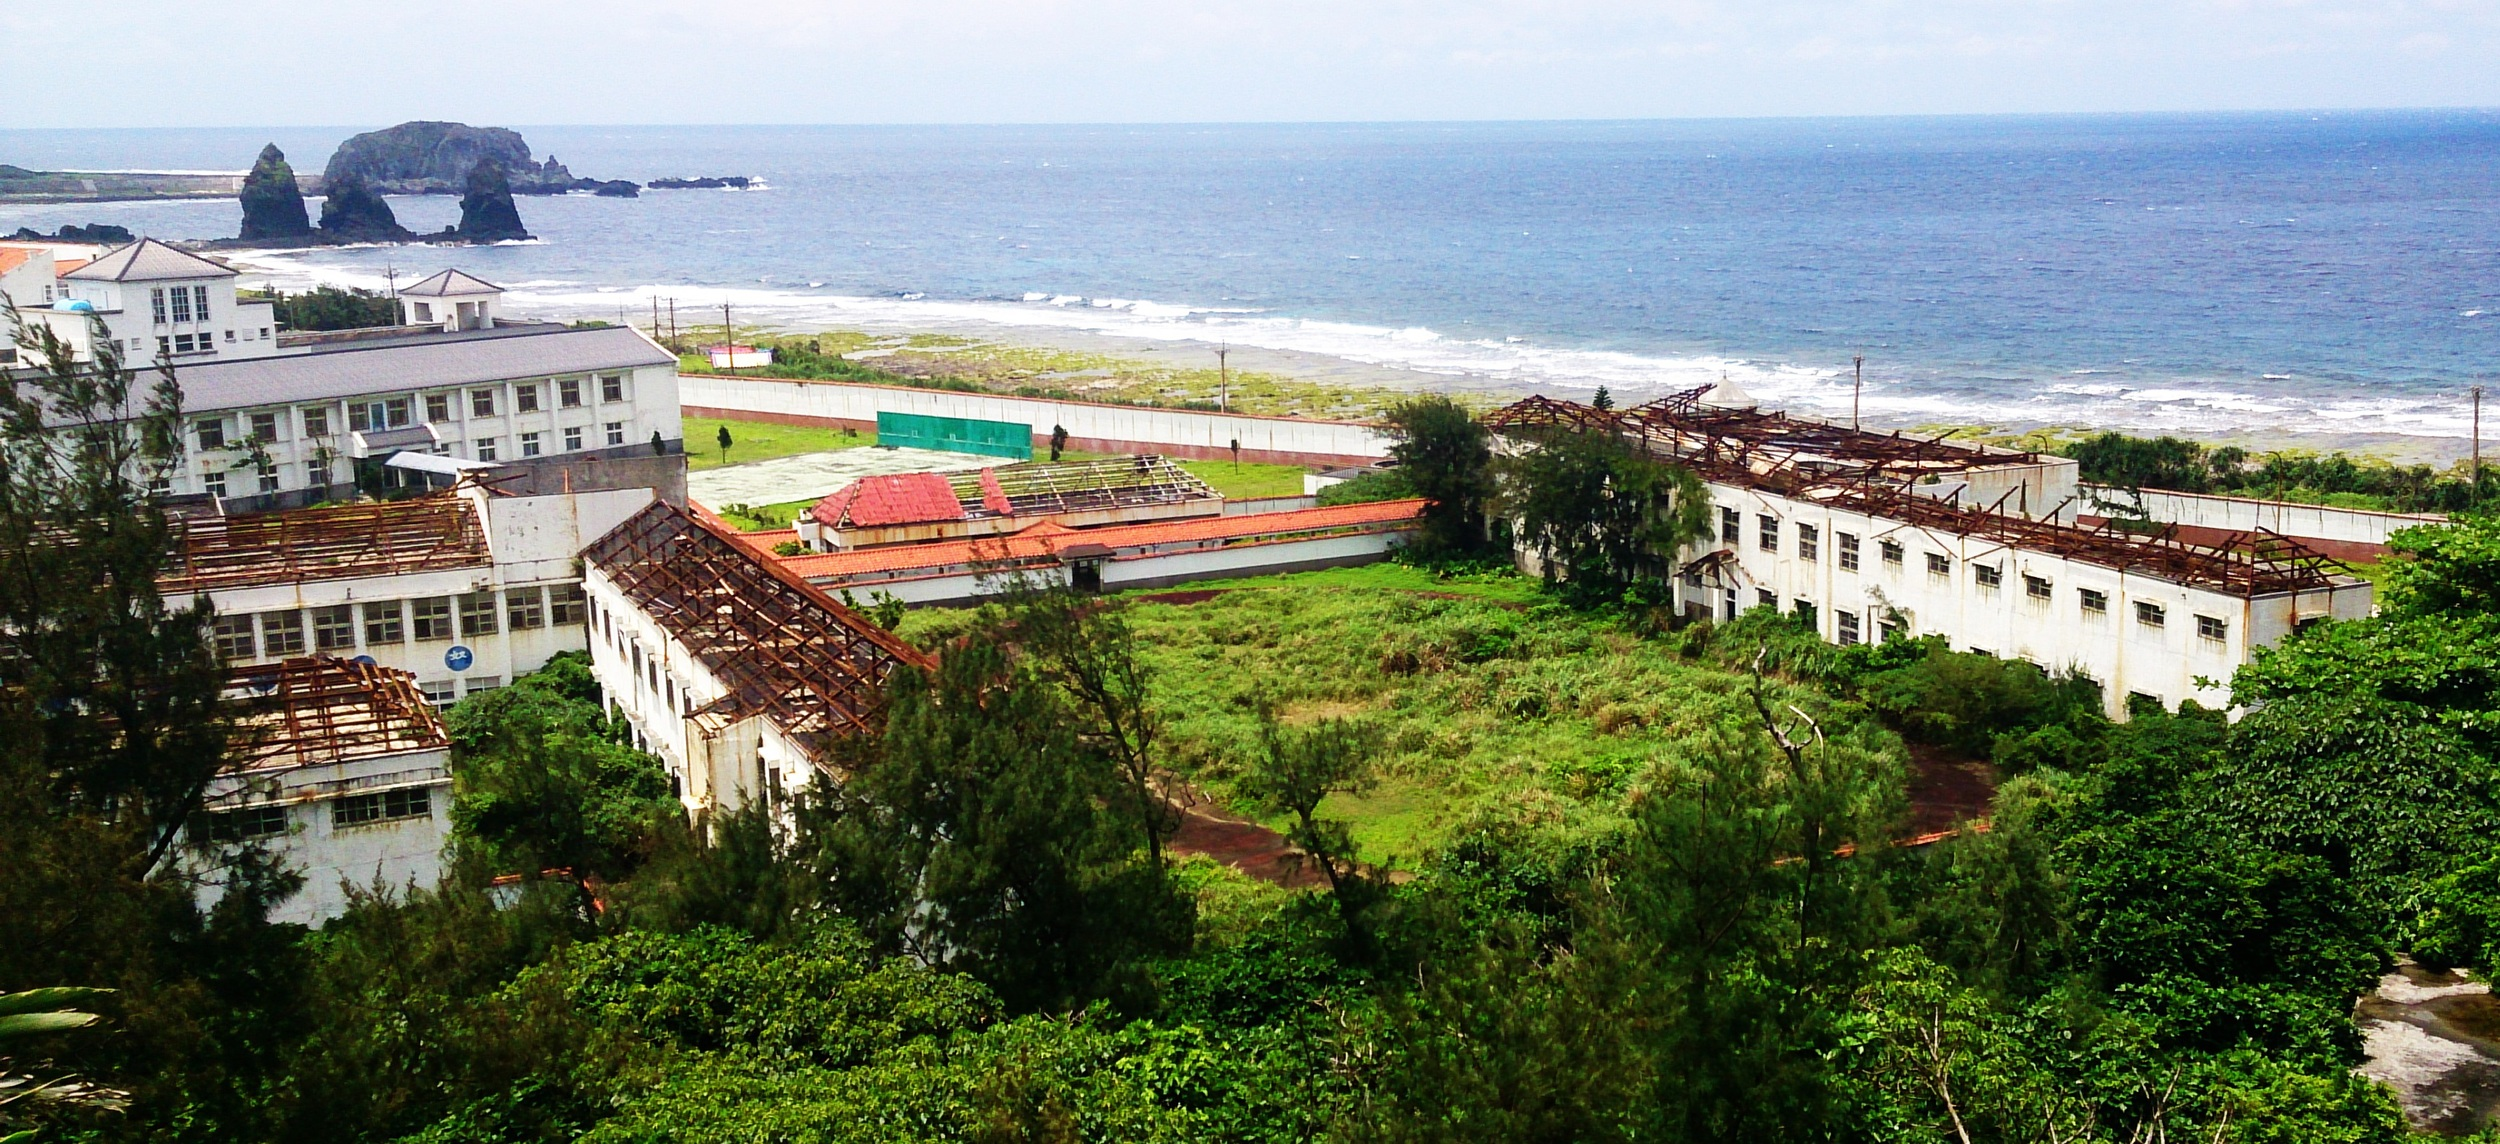 The abandoned vocation center and the ruined hotel.